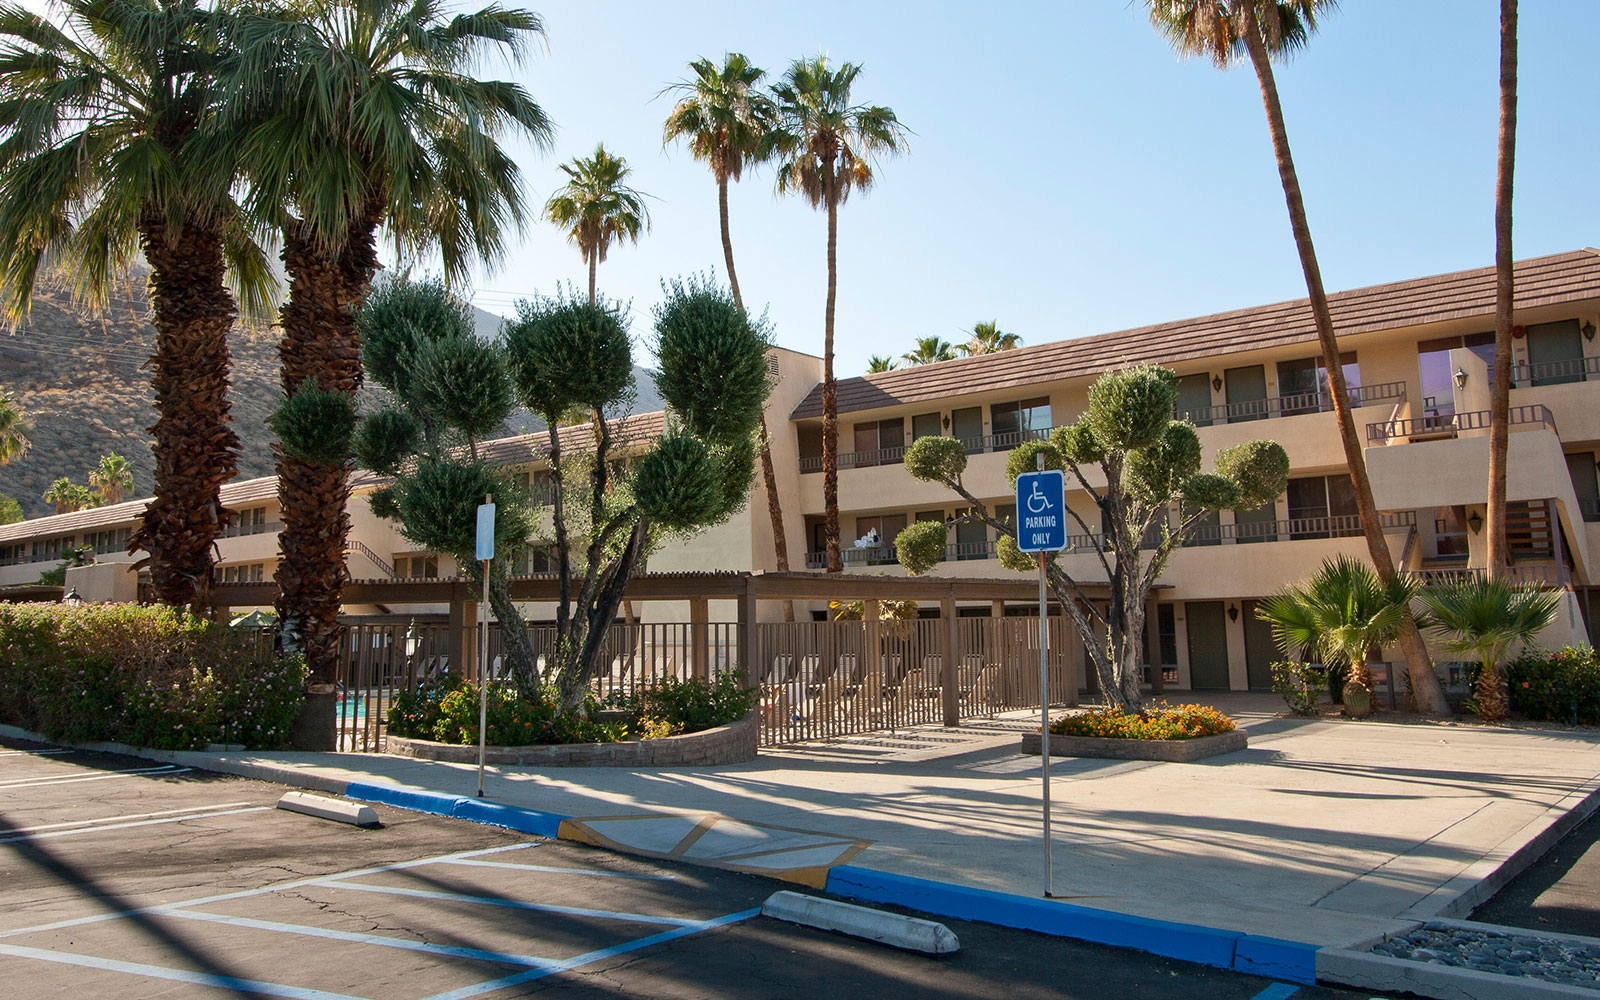 fresno hotels map with Vagabond Inn Palm Springs on Vagabond Inn Palm Springs also Eureka Calif also Ontario Map furthermore Flyfresno in addition Attraction Review G32414 D3267466 Reviews Island Waterpark Fresno California.